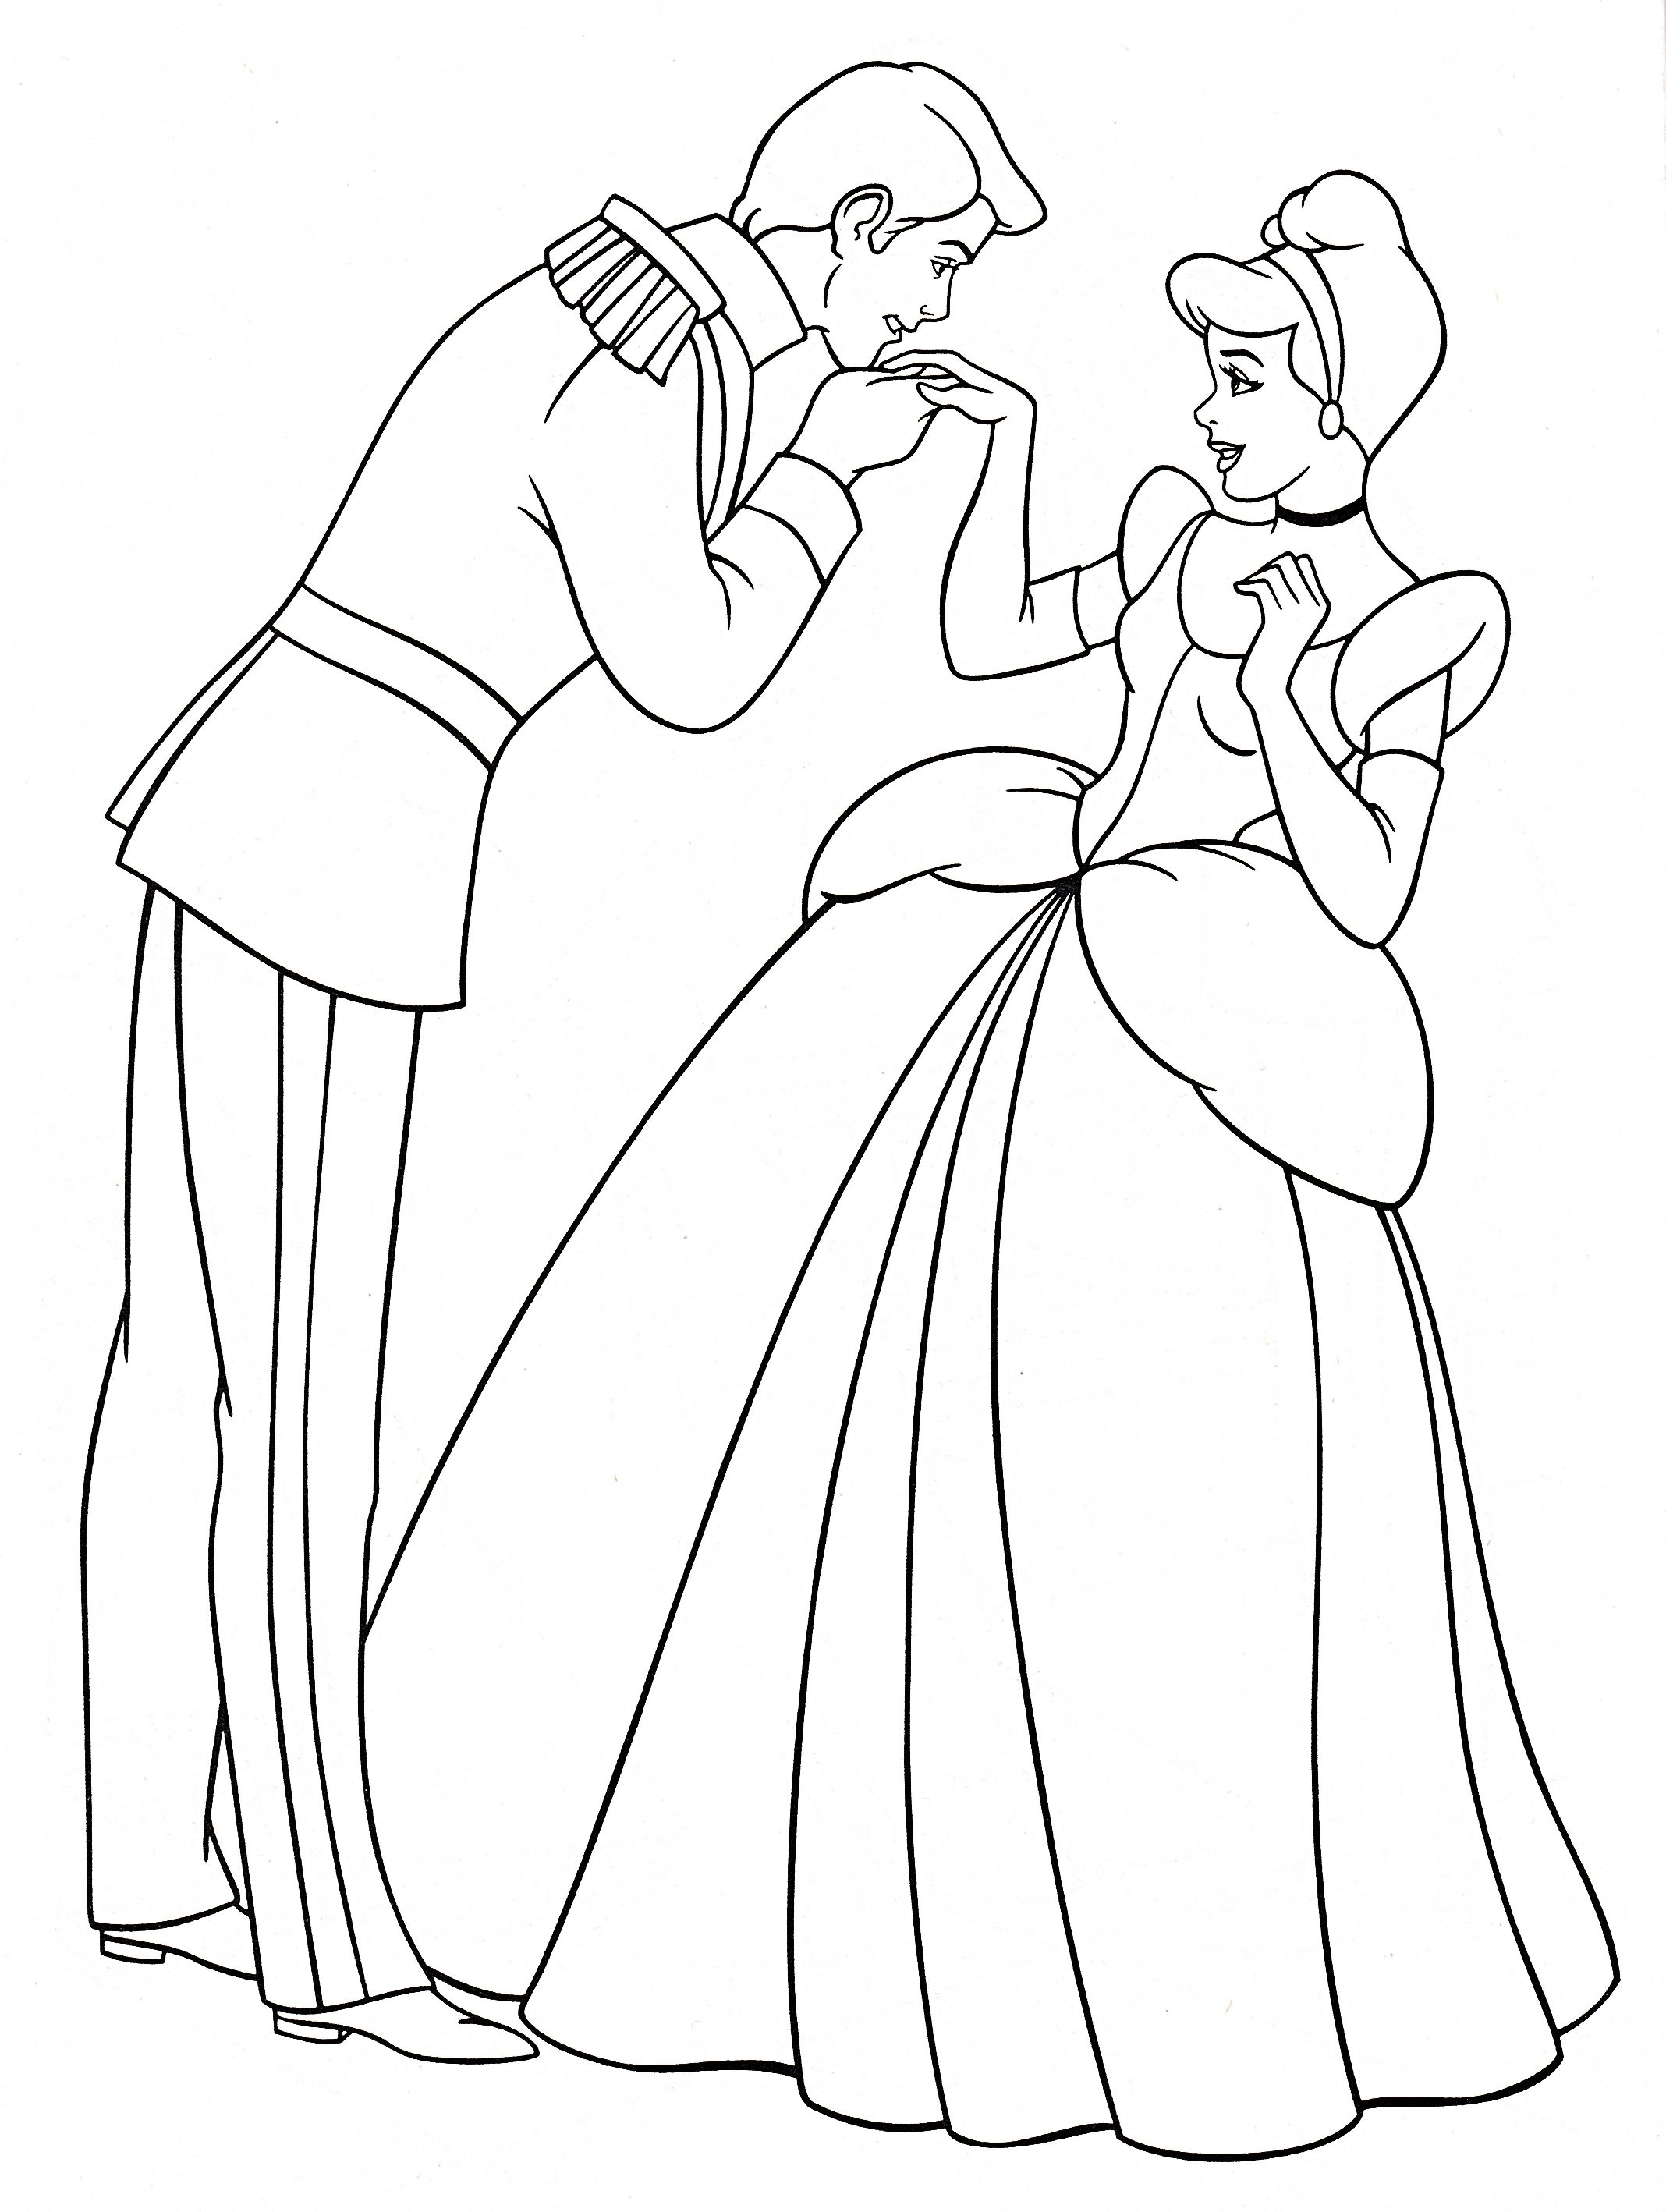 Disney Princess And Prince Coloring Pages | Coloring Pages ...